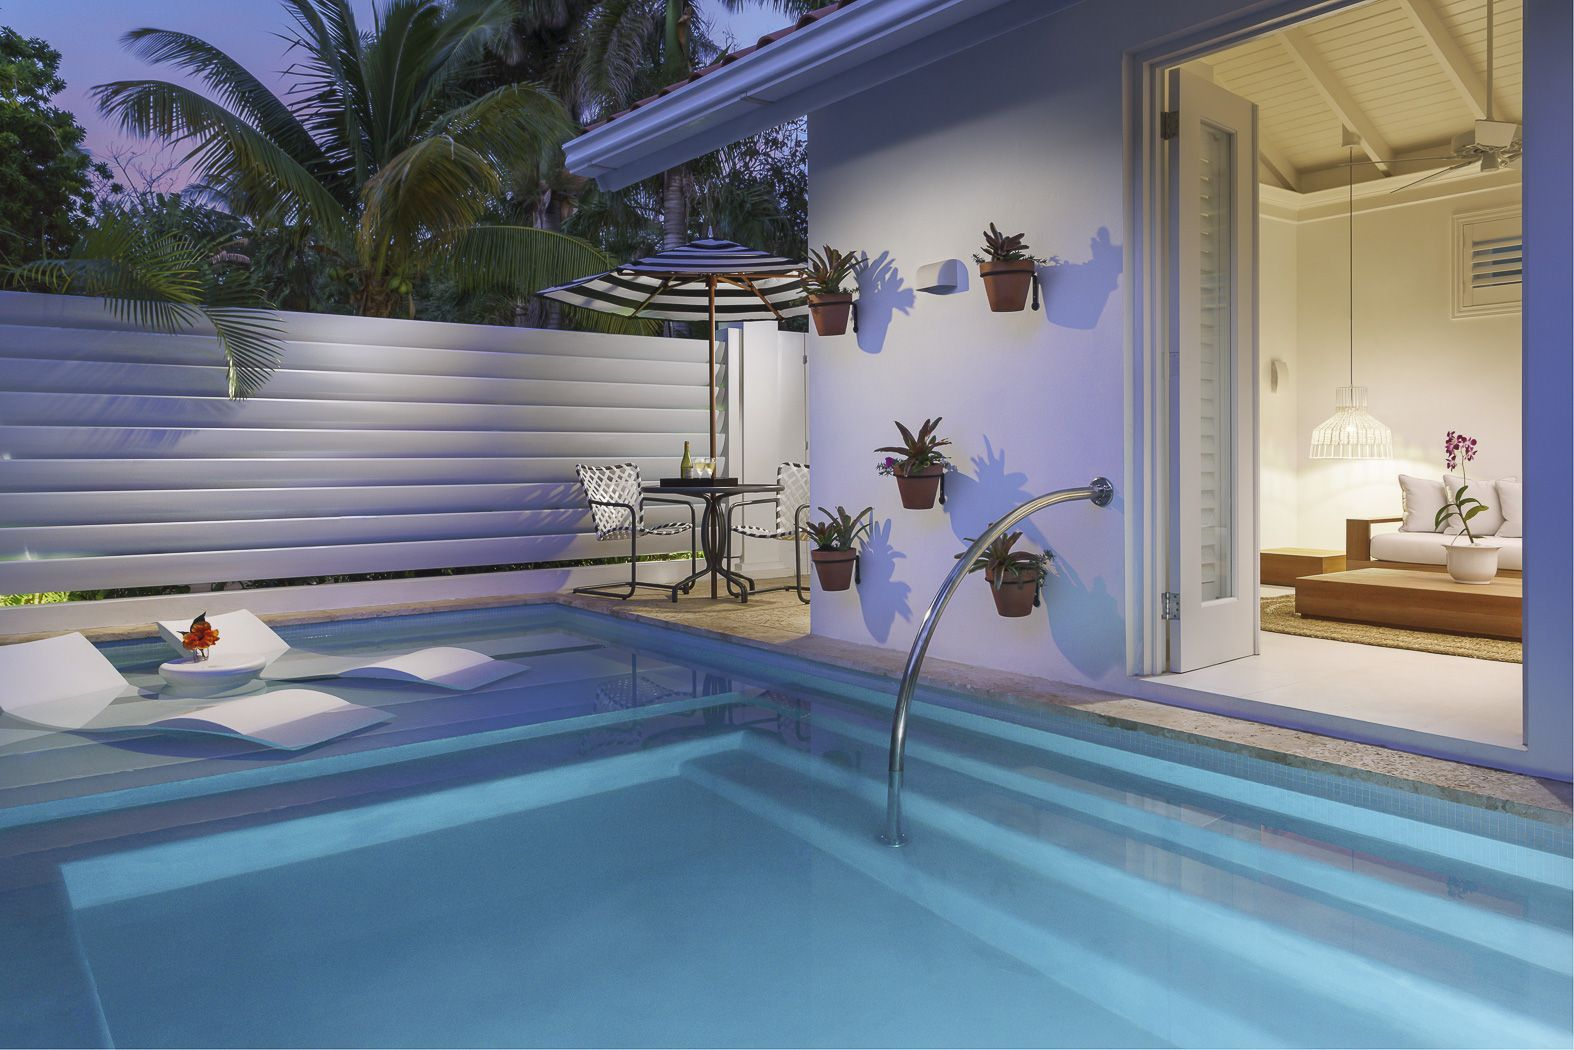 Honeymoon Suite At S Tower Isle With Unlimited Spa Services On The Caribbean Island Of Jamaica